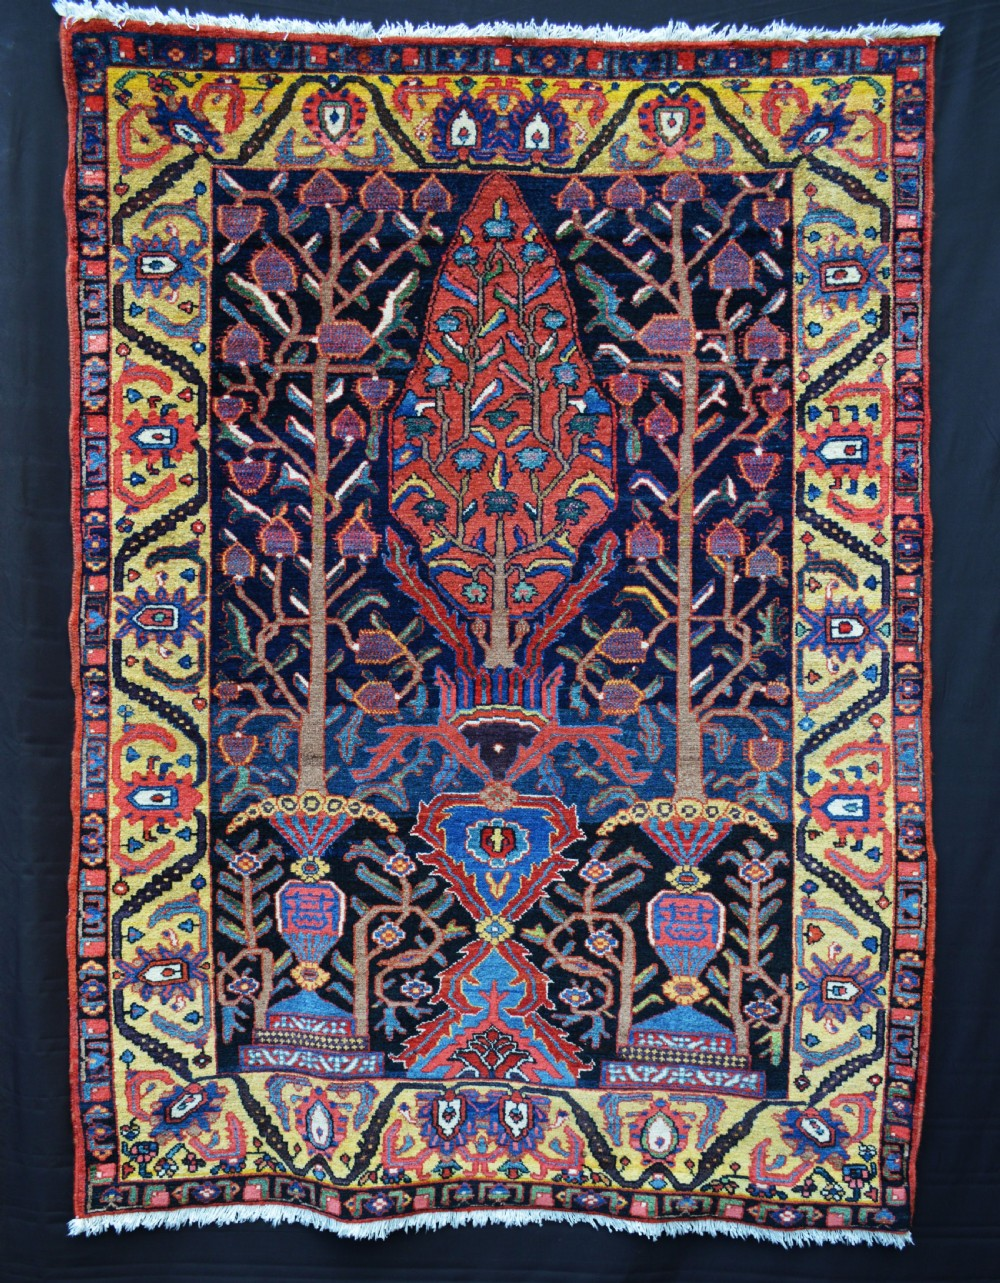 antique bakhtiari khan rug the chahar mahal western persia